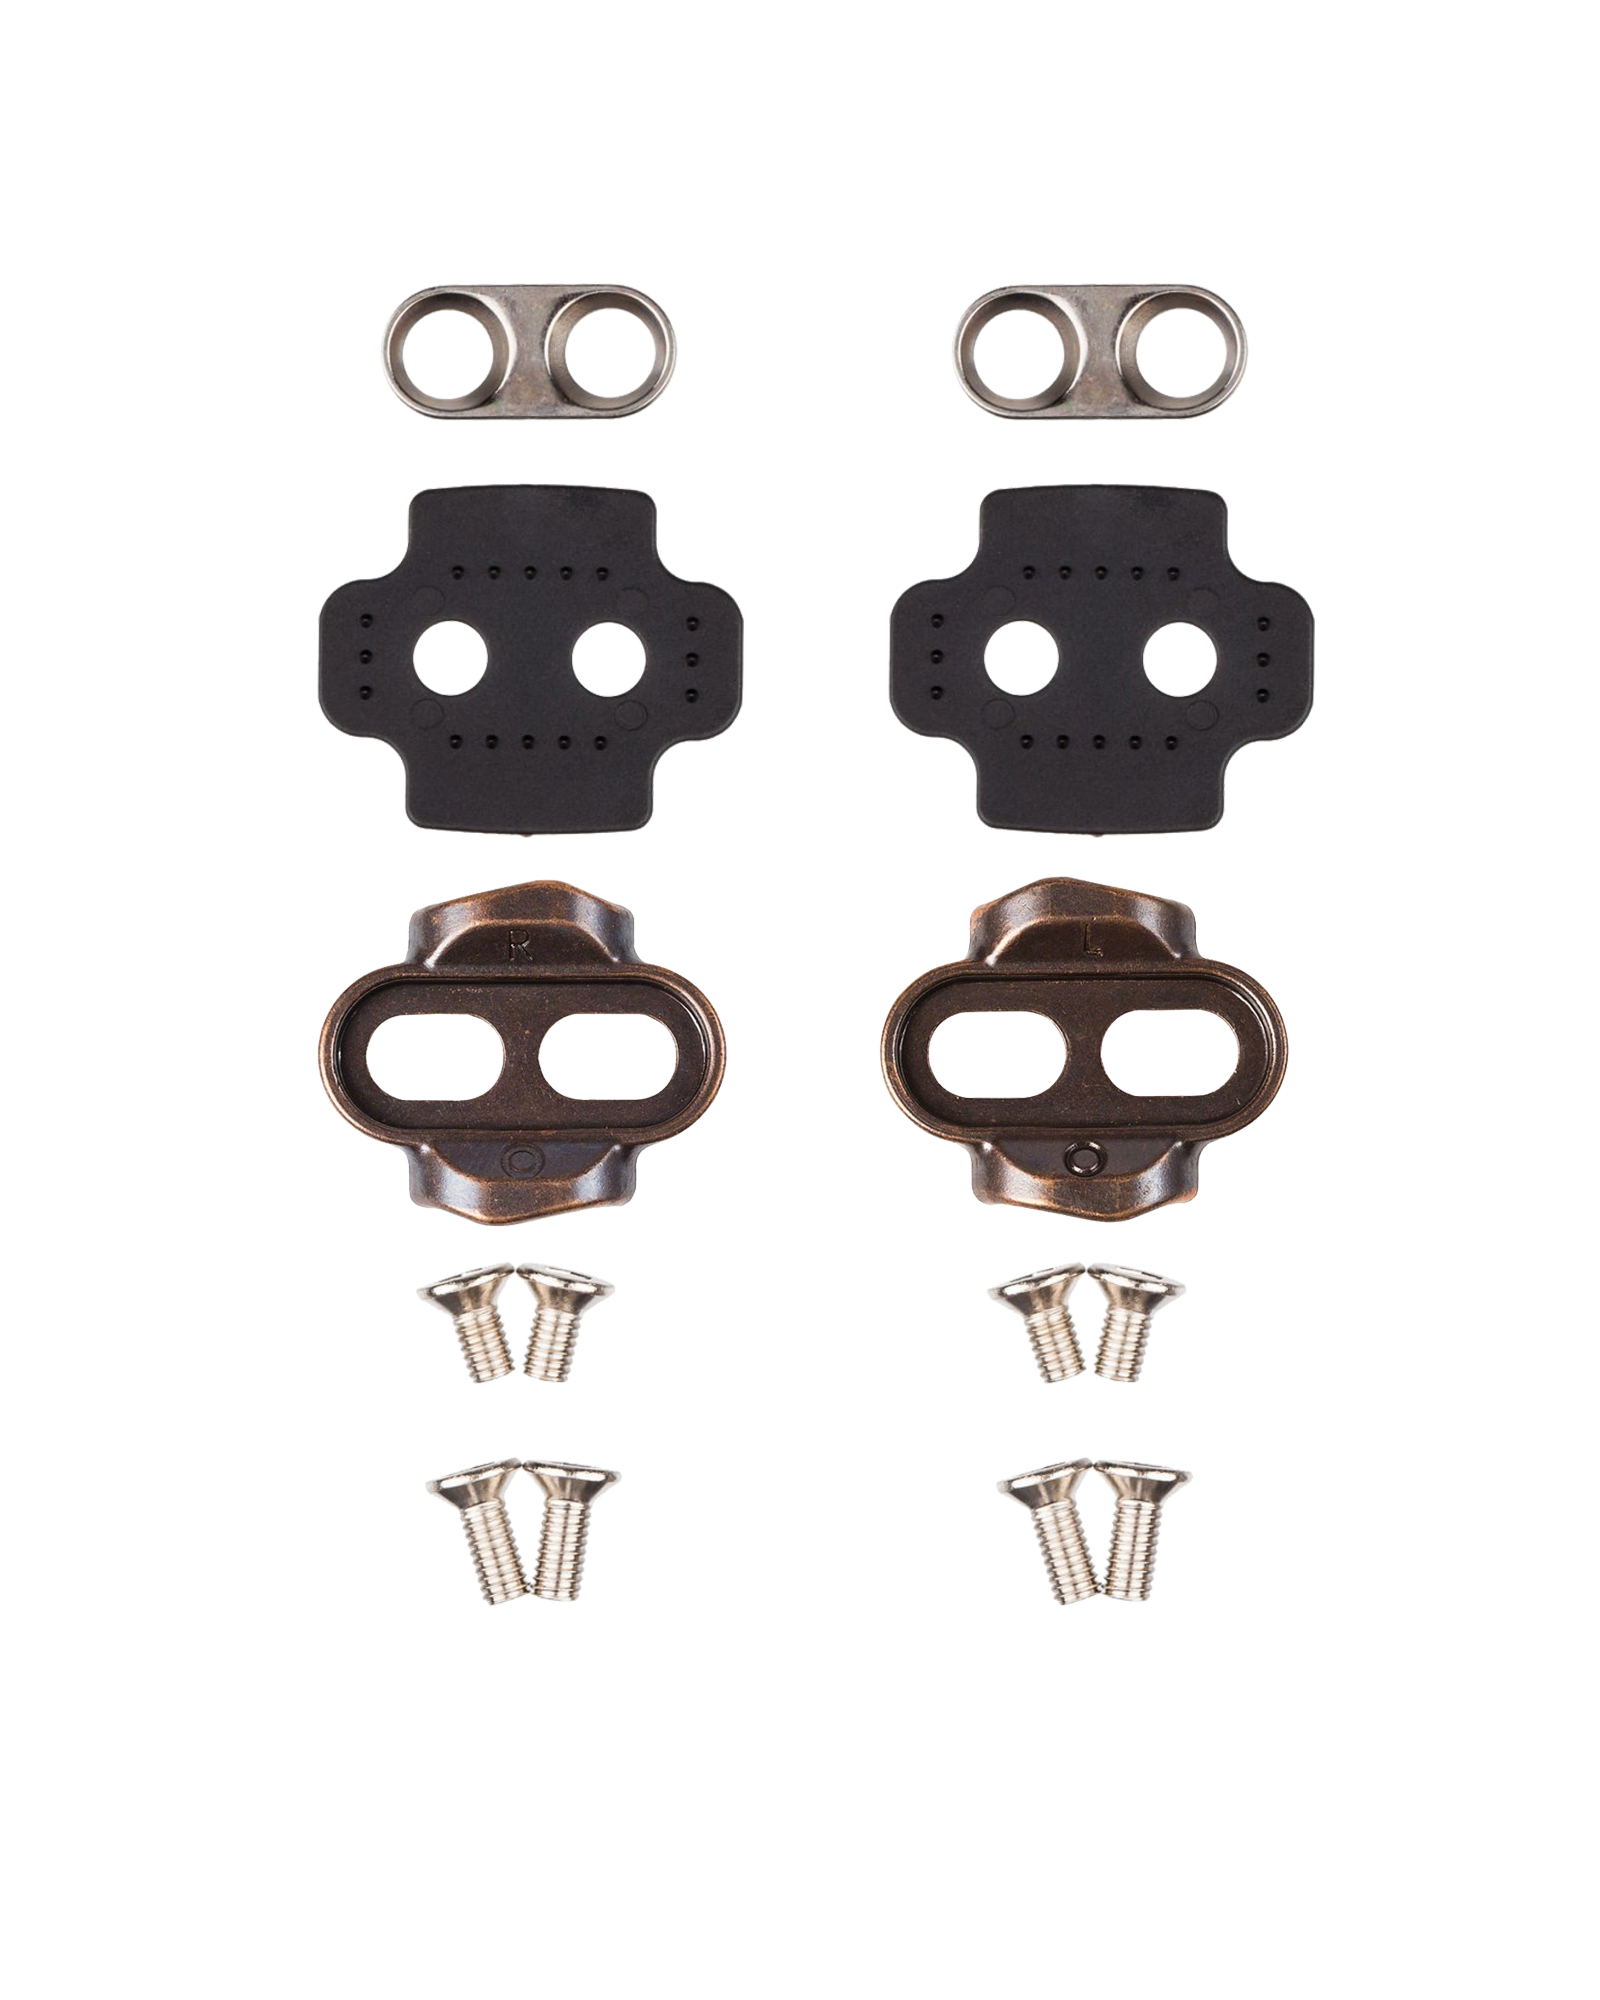 Crankbrothers Easy Release Cleats | Pedal cleats